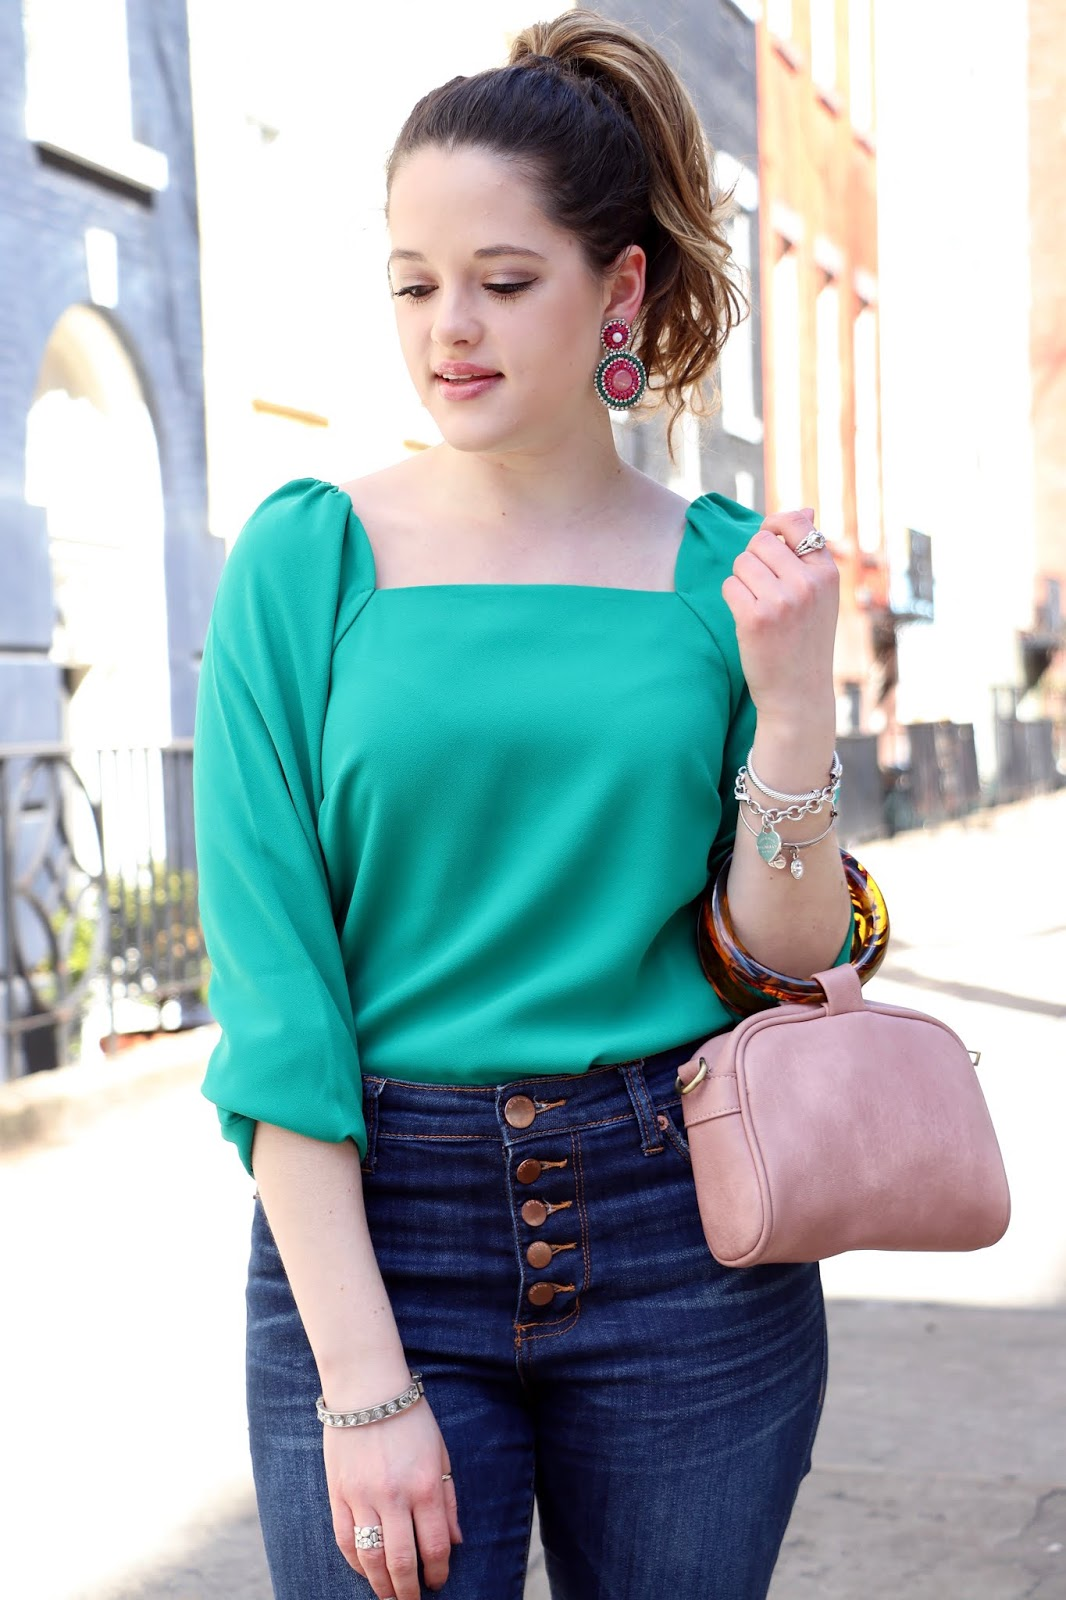 Nyc fashion blogger Kathleen Harper wearing a square neckline top